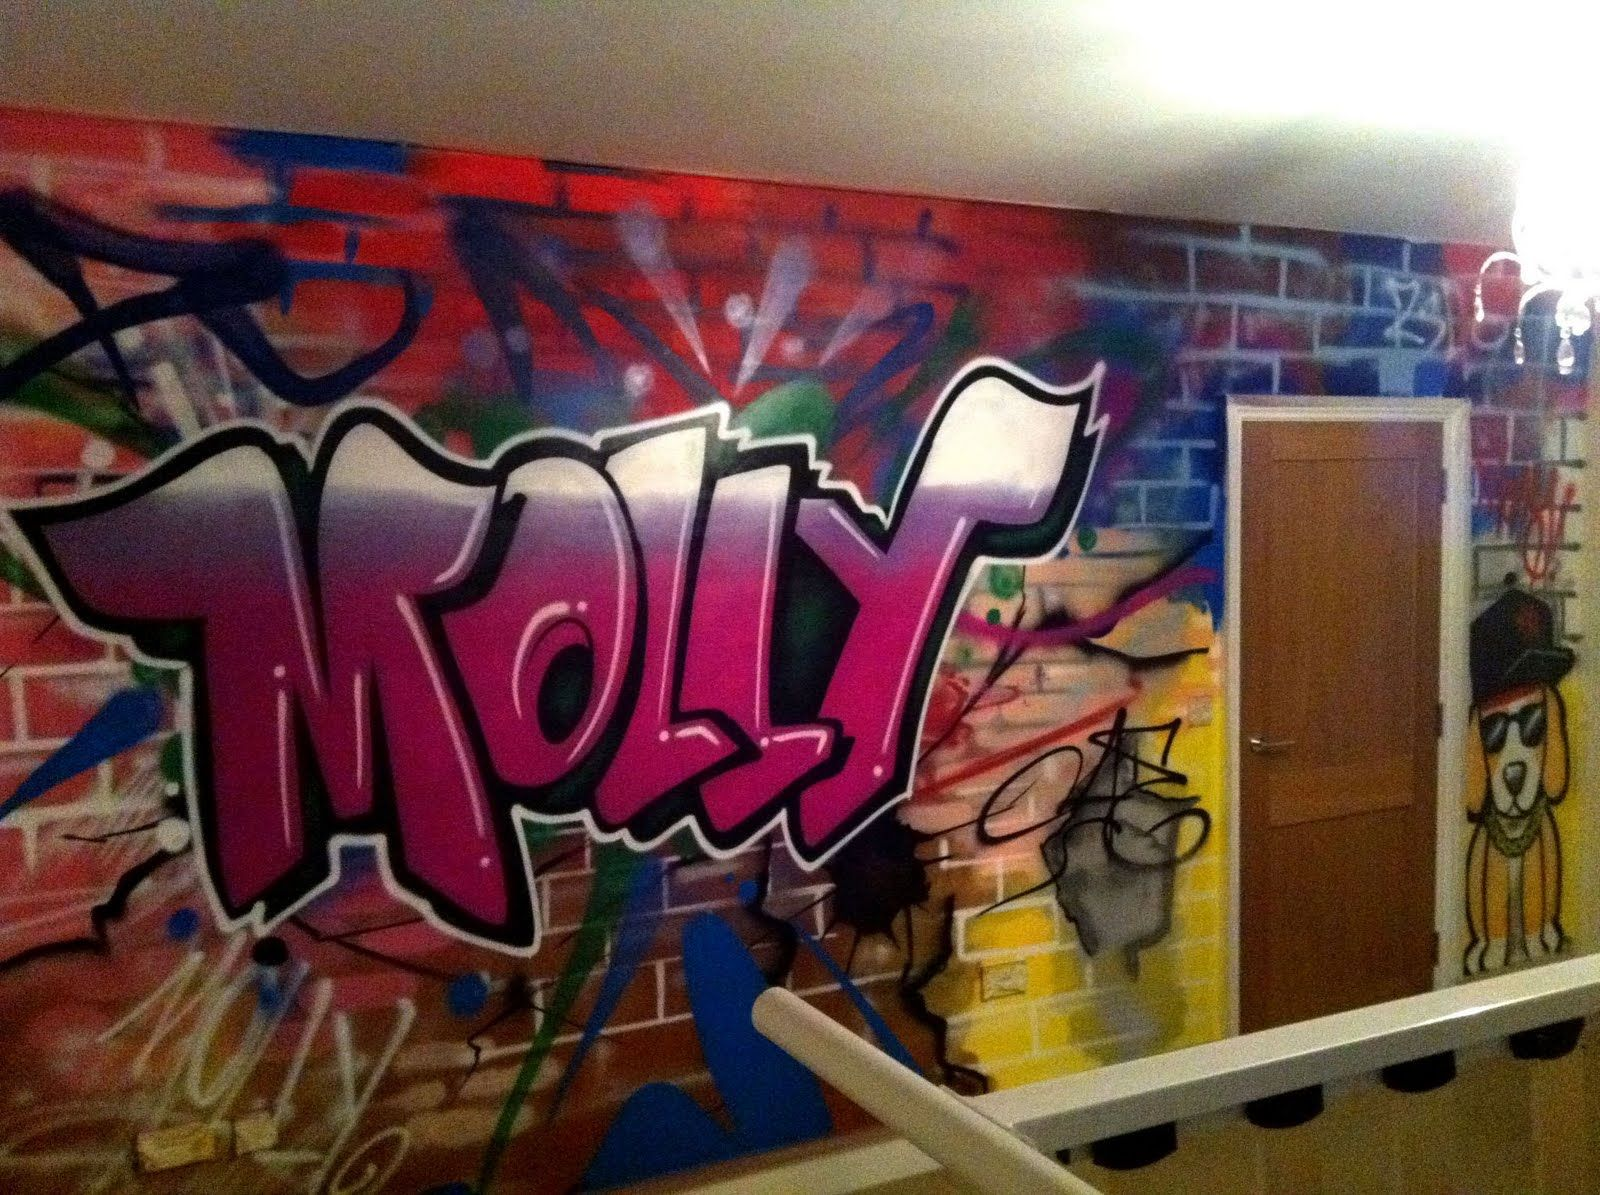 Graffiti wall art bedroom - Explore Graffiti Bedroom Graffiti Wall And More